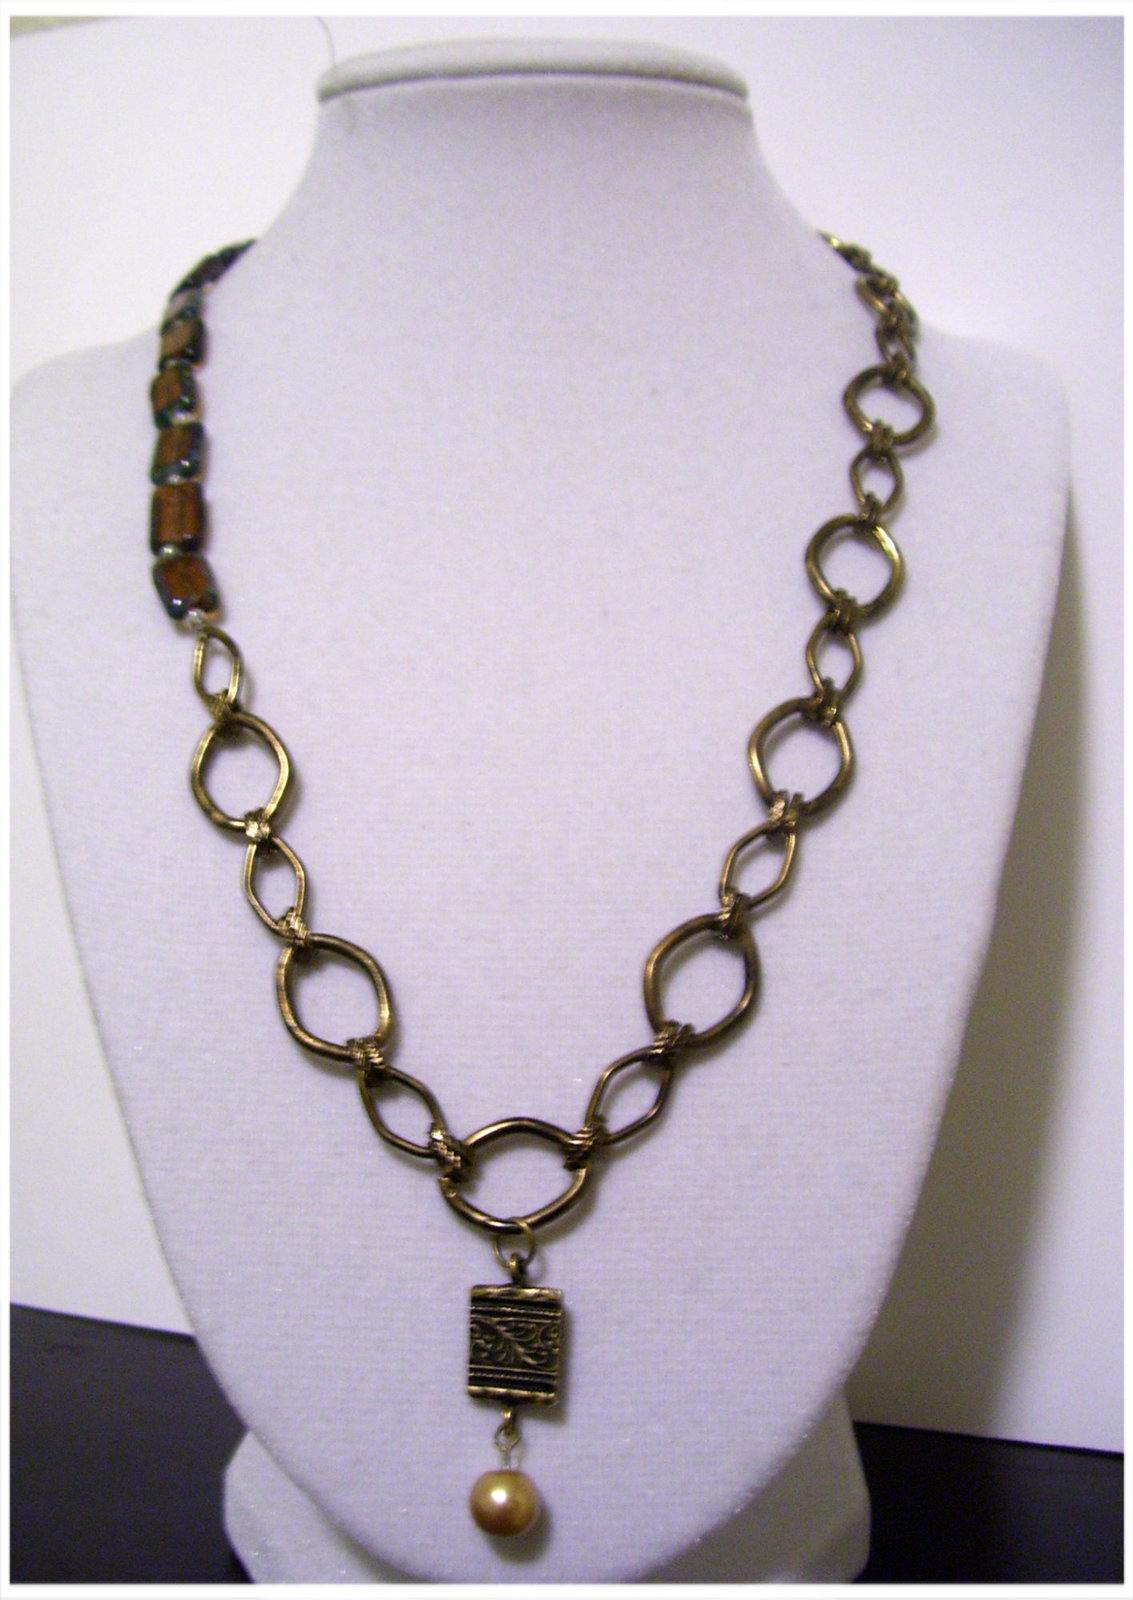 Vintage Style Brass Classic Style Chain and Beaded Necklace